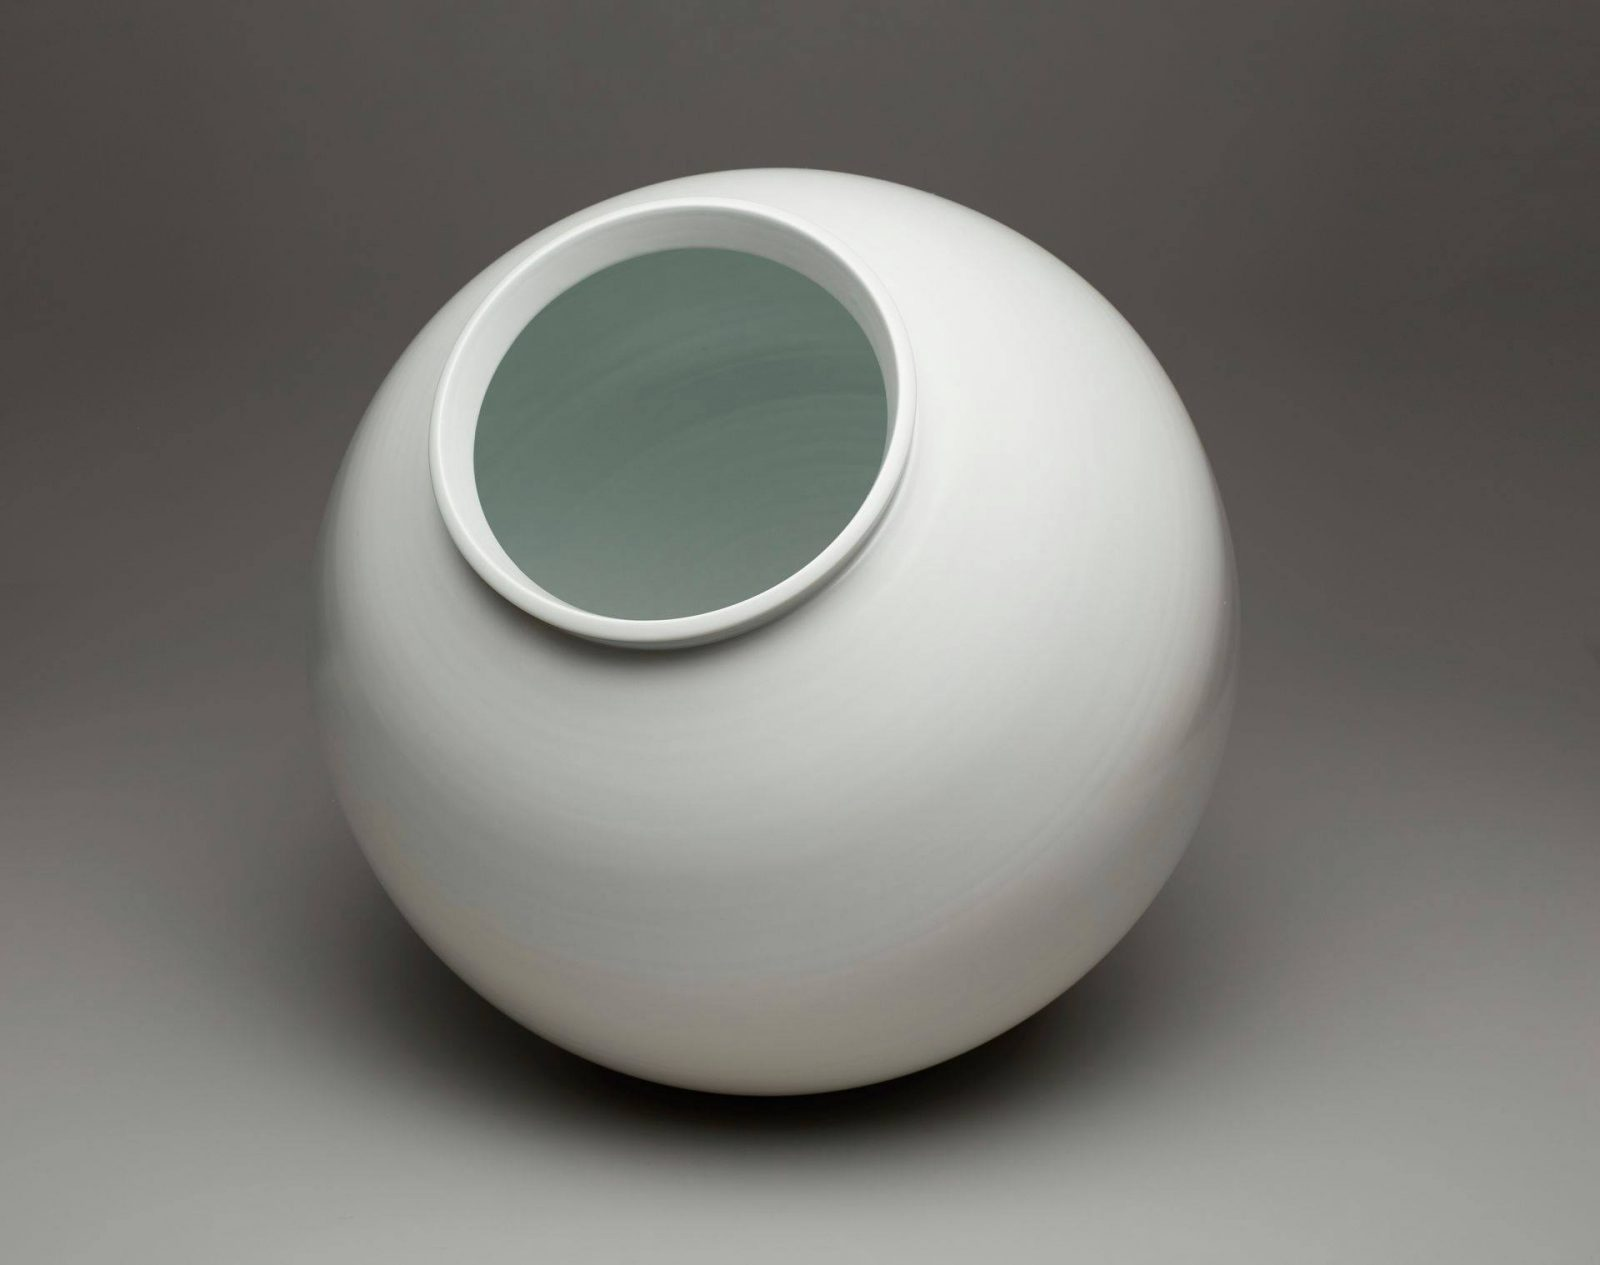 A photograph of soft-white, spherical-shaped jar that is subtly elongated vertically. It has a raised, upright lip that flares ever so slightly on a wide mouth. The base or foot is narrower than the mouth but mirrors its simple shape. Subtle striations run horizontally around the body of the jar giving the appearance of very faint texture. The jar is pictured against a gray background.